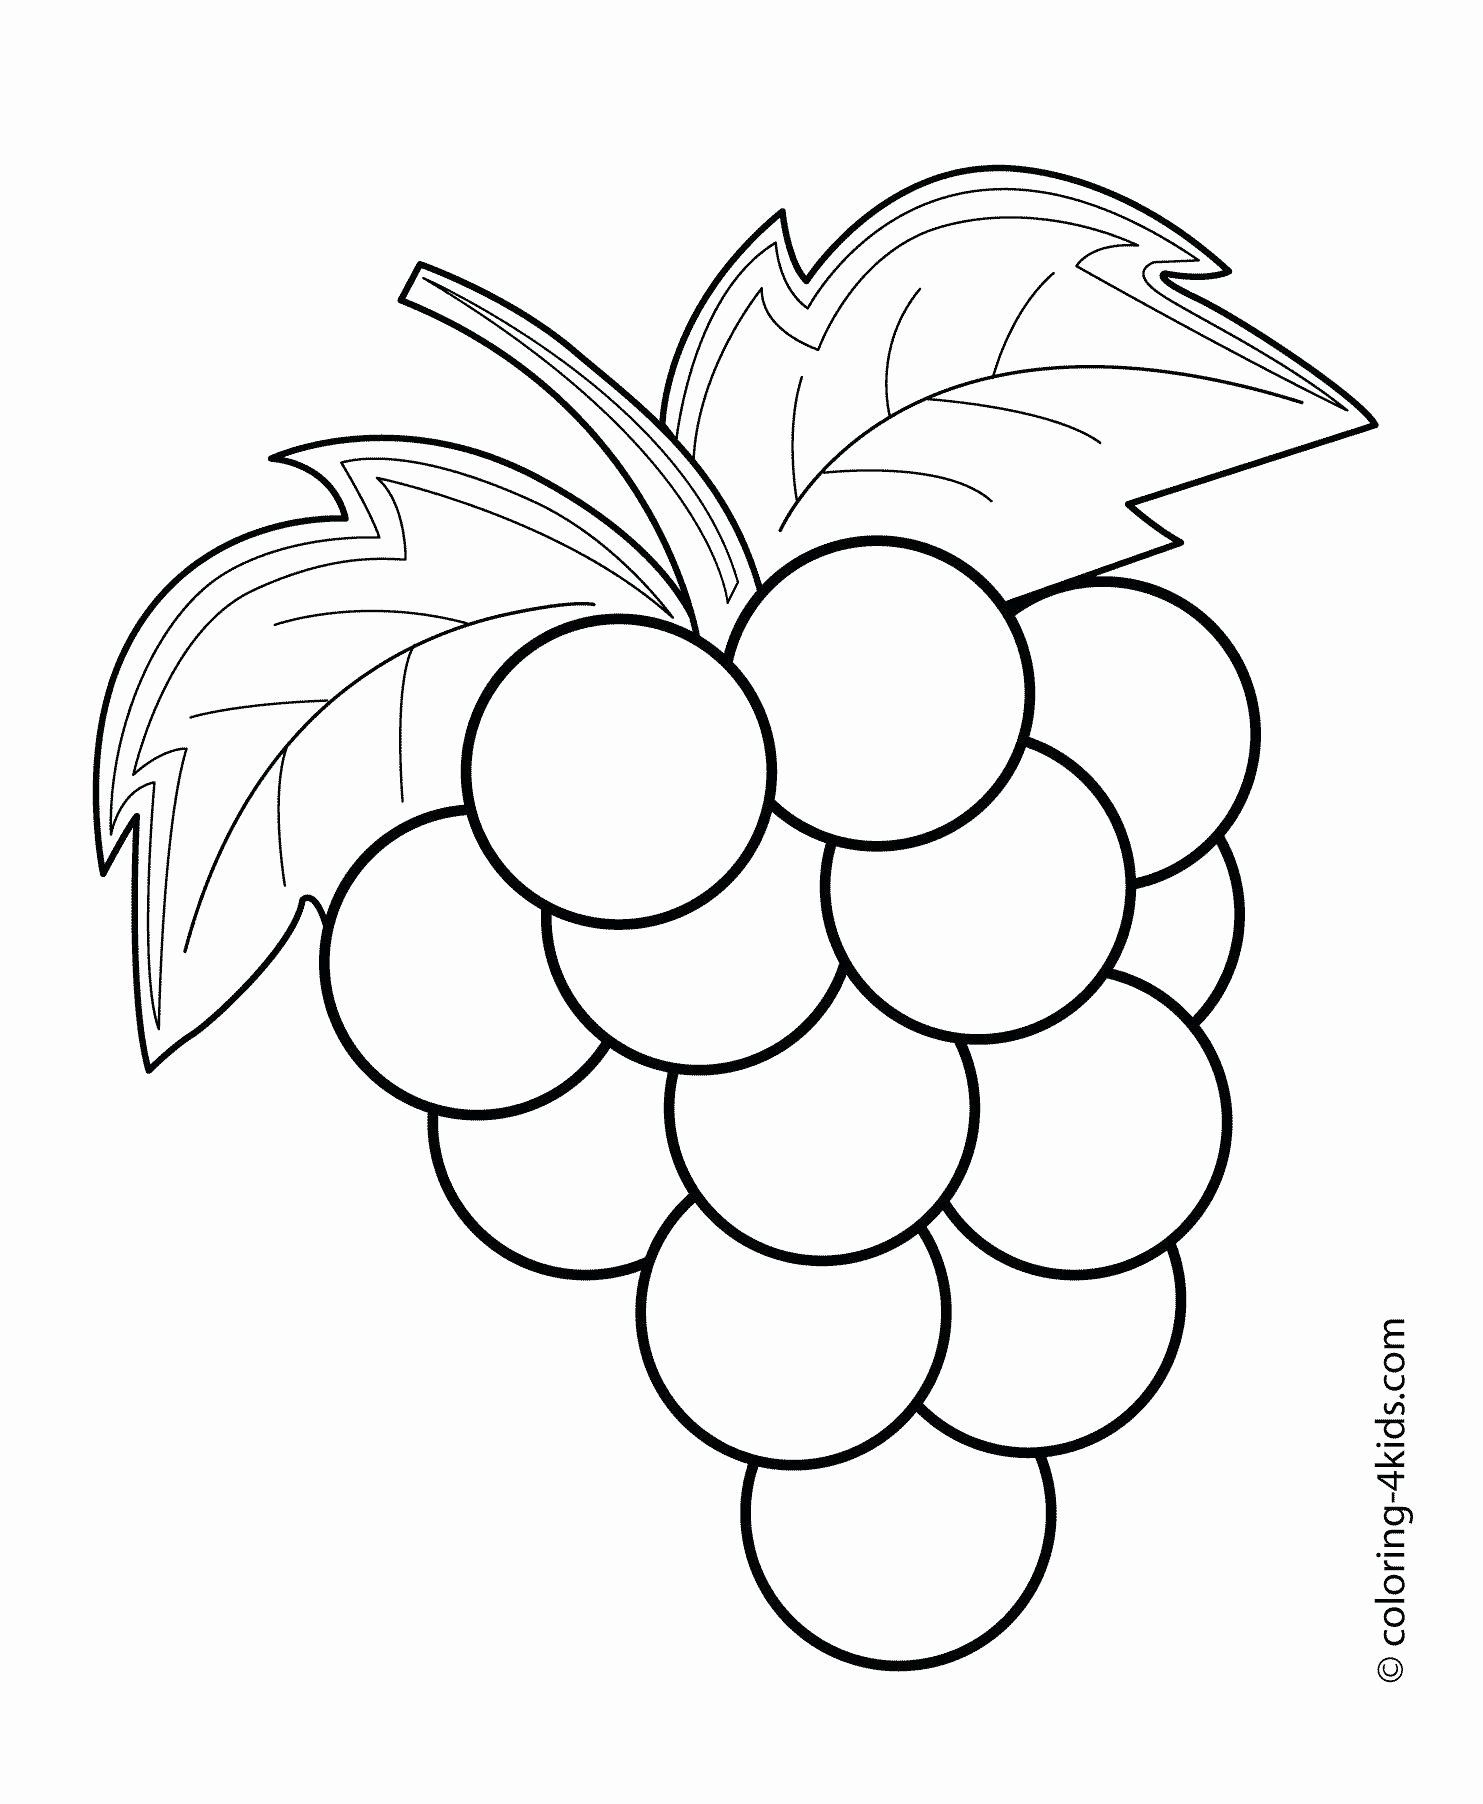 Apple Coloring Pages For Kindergarten In 2020 Fruit Coloring